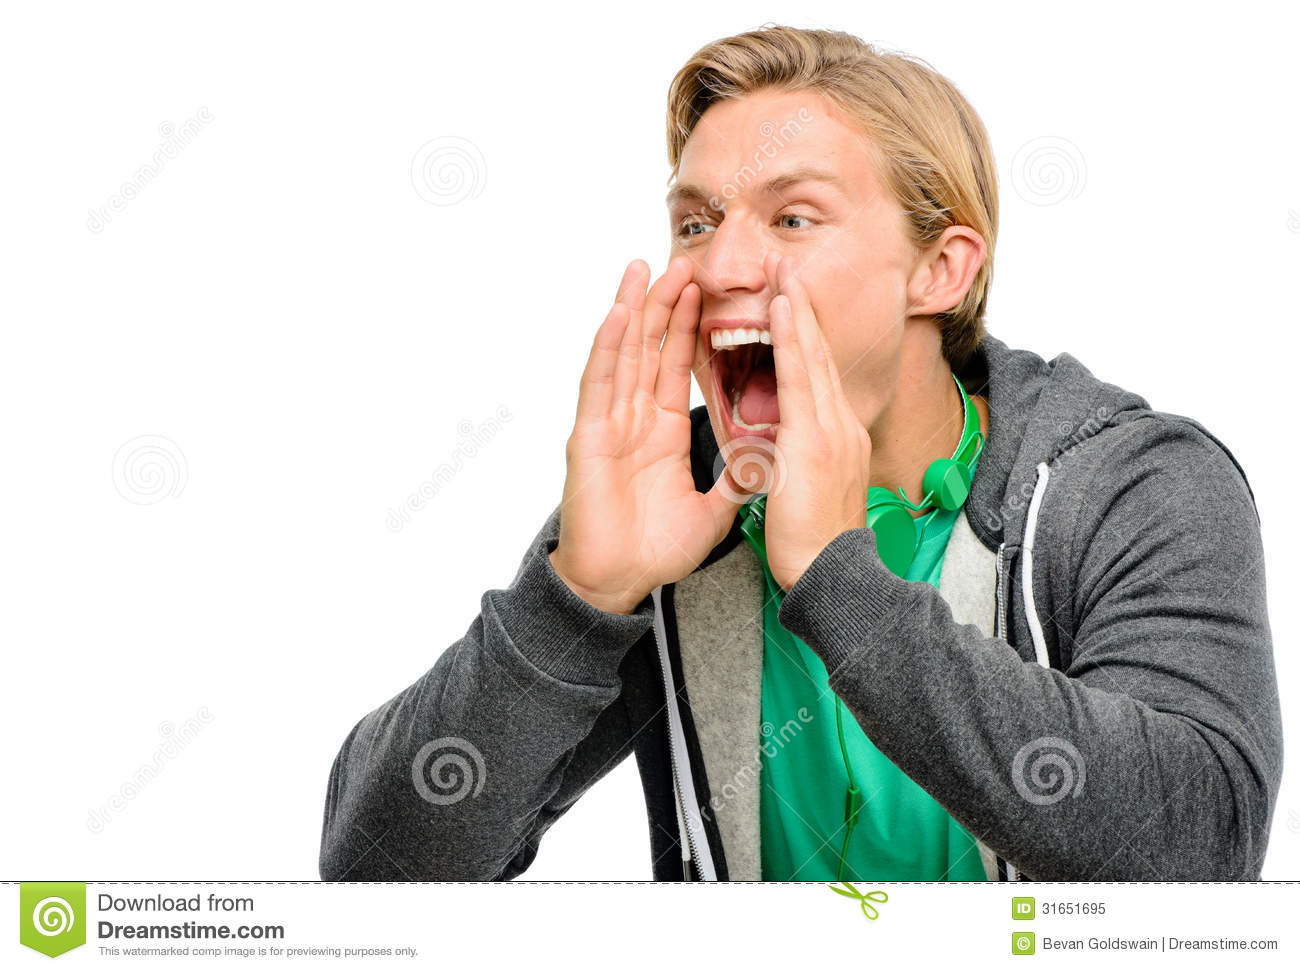 happy-young-man-shouting-isolated-white-background-announcing-31651695.jpg